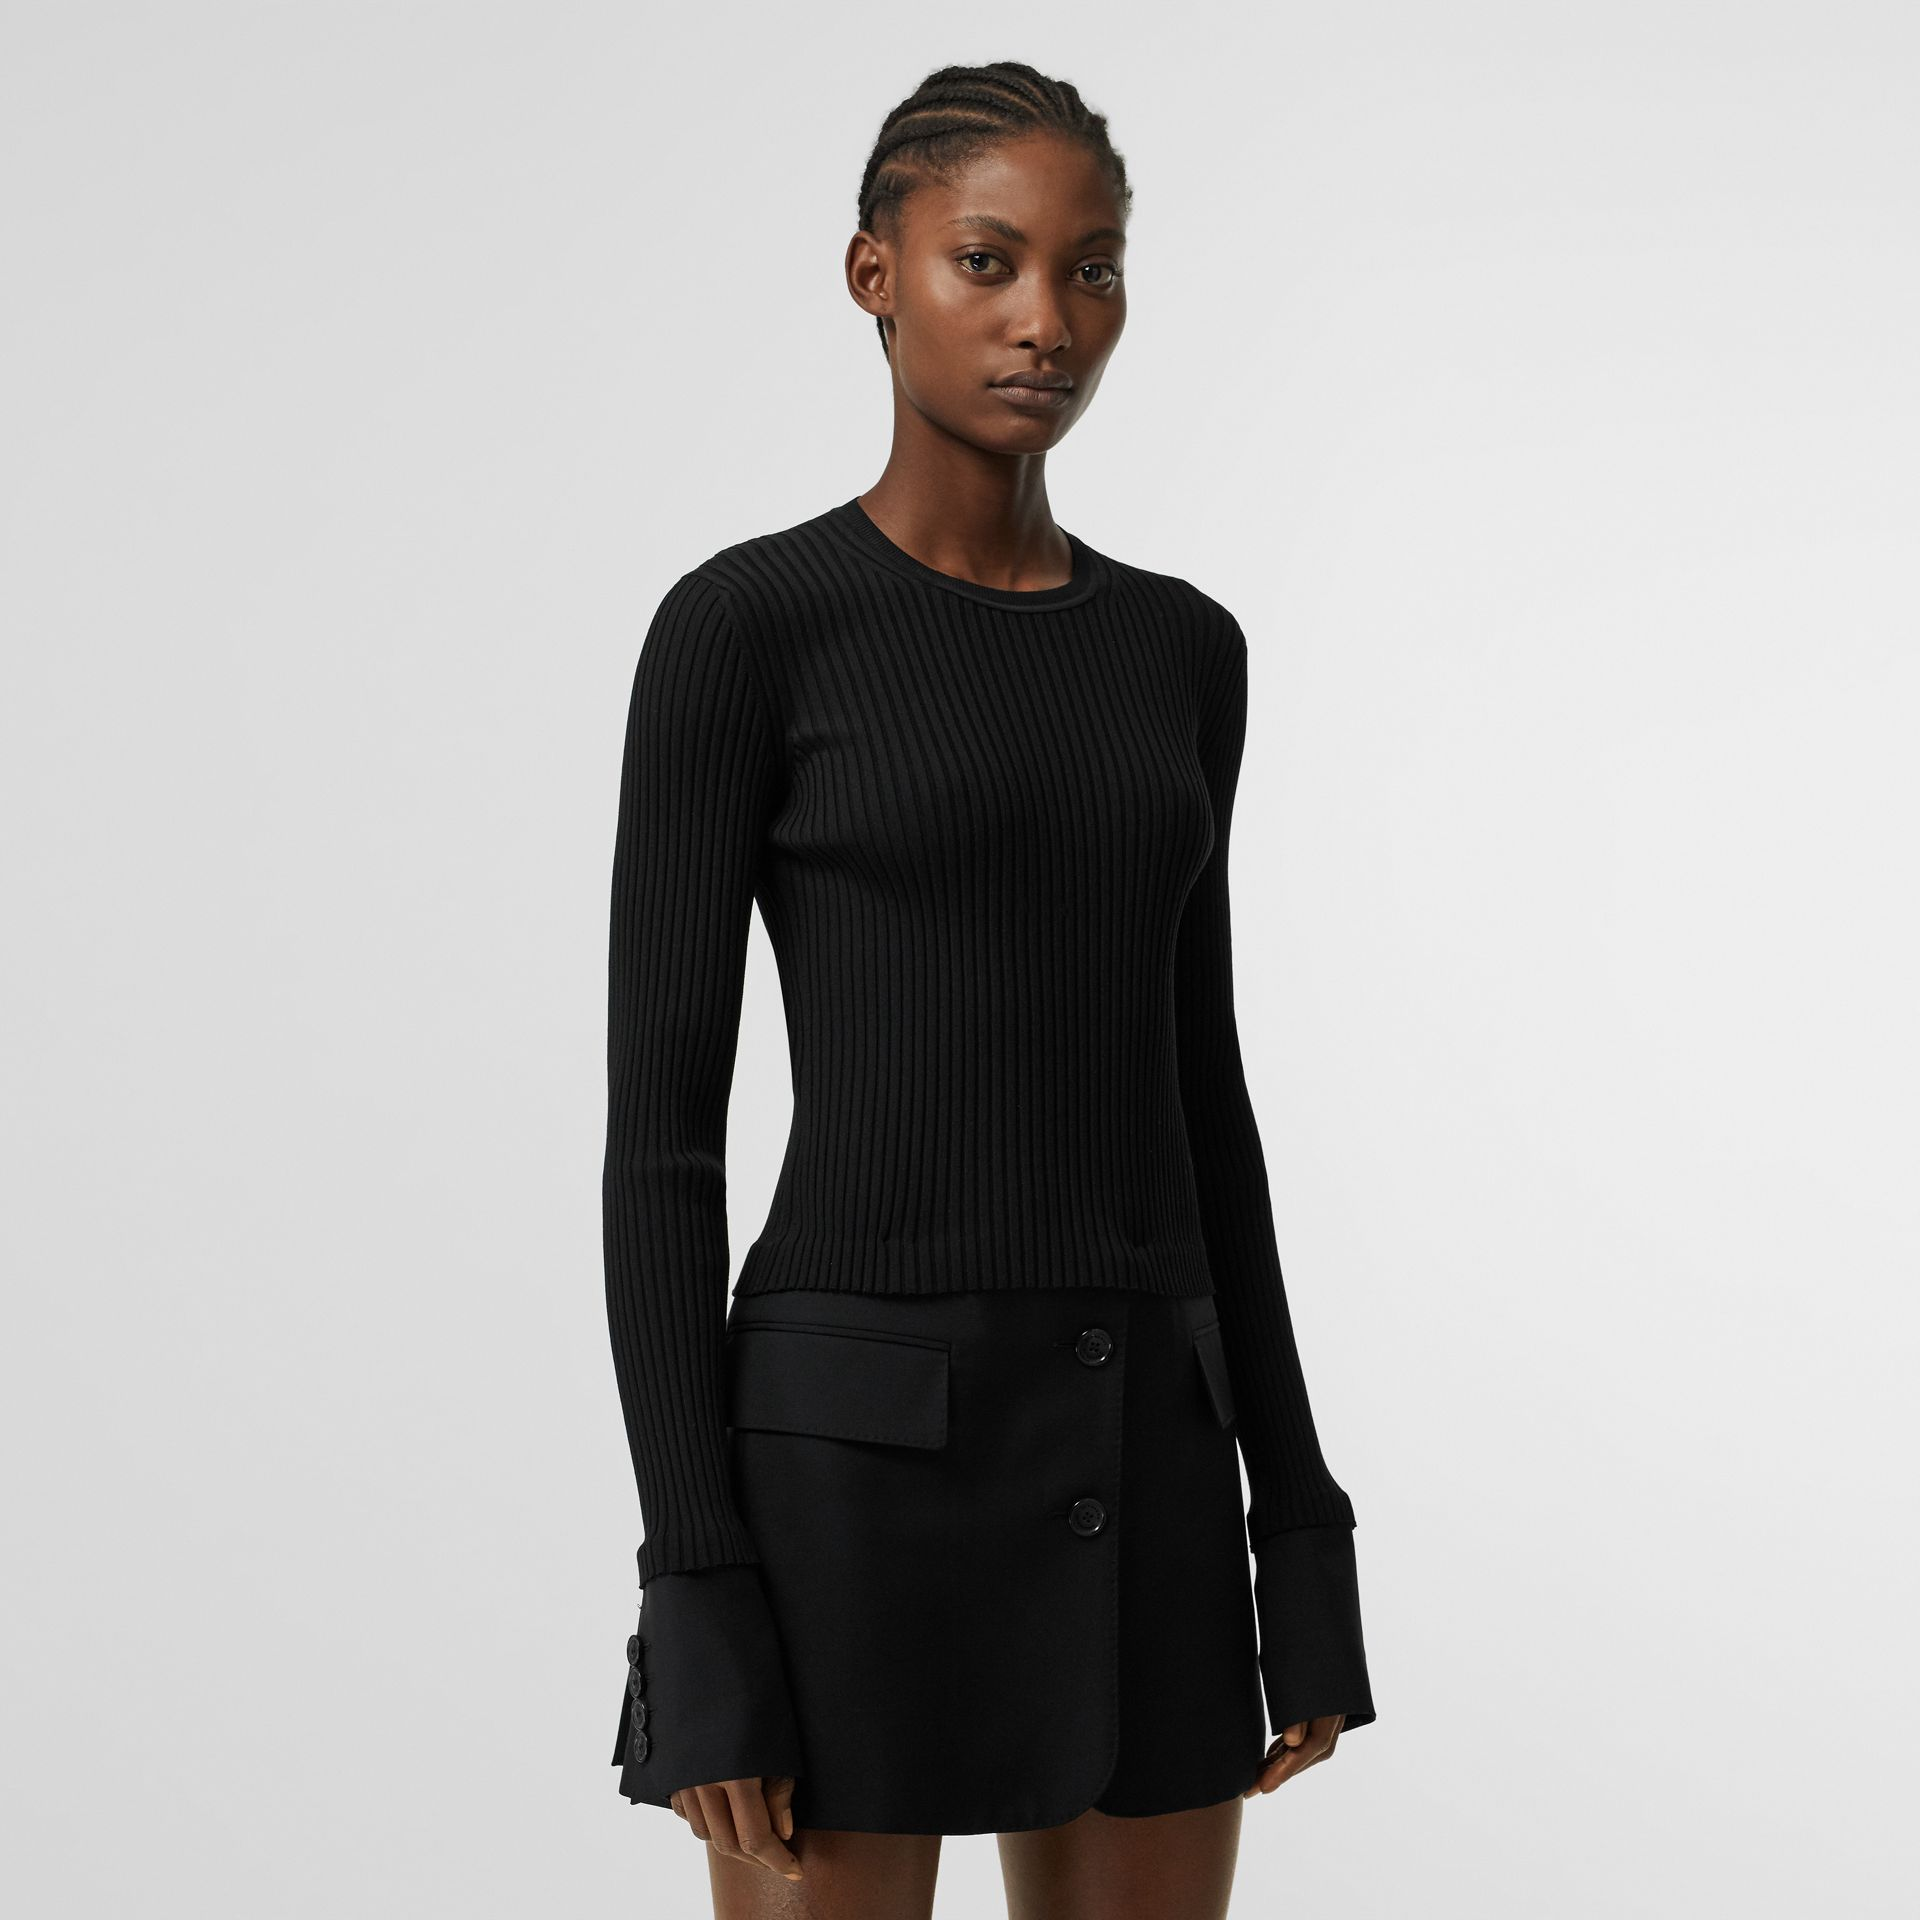 Tailored Hem Rib Knit Wool Mohair Dress in Black - Women | Burberry - gallery image 5